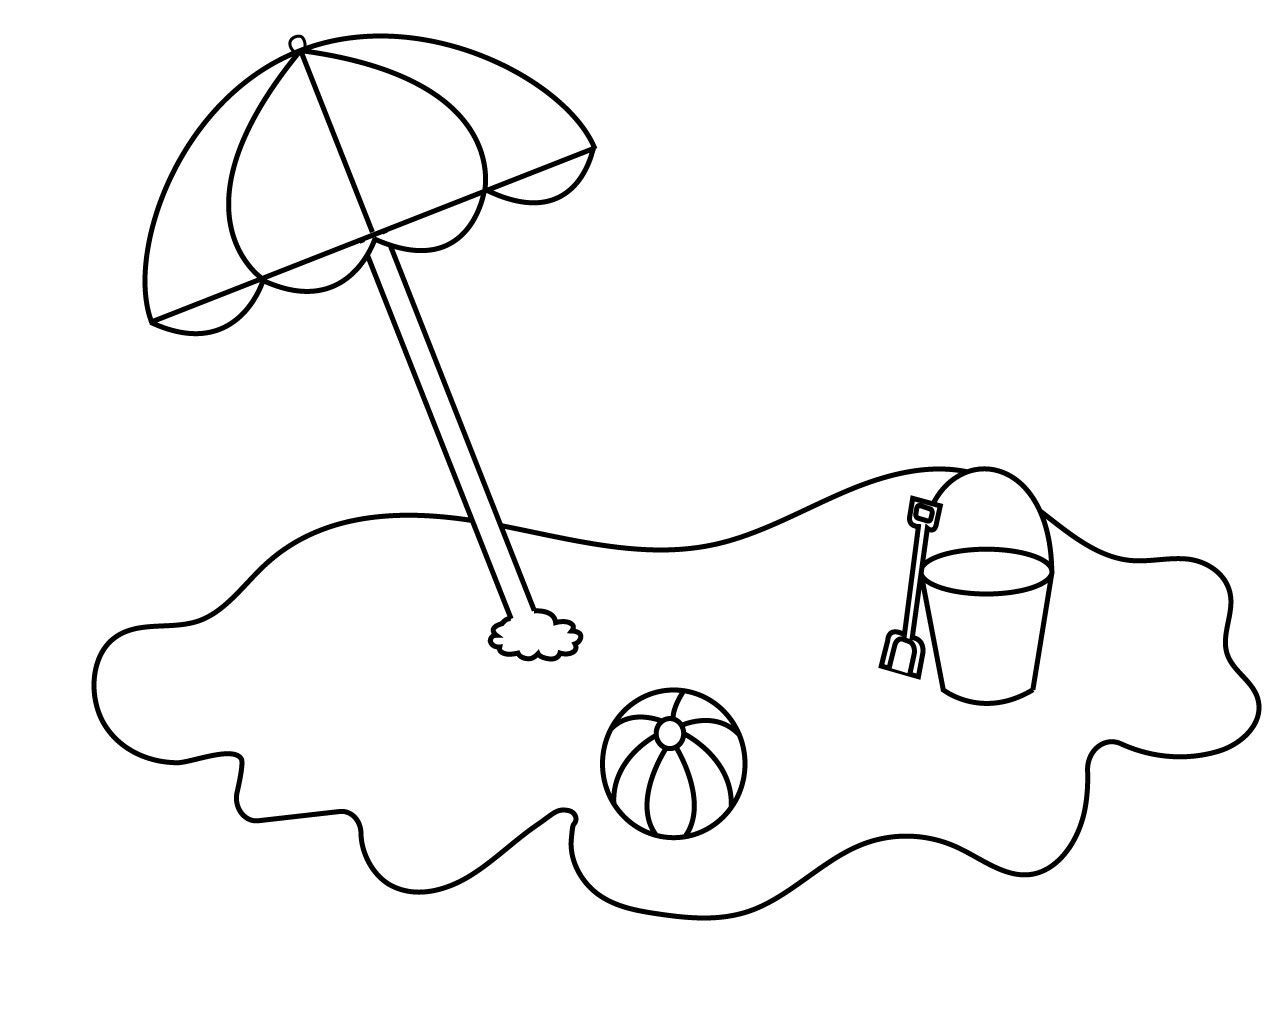 Umbrella Coloring Pages For Your Little Ones Umbrella